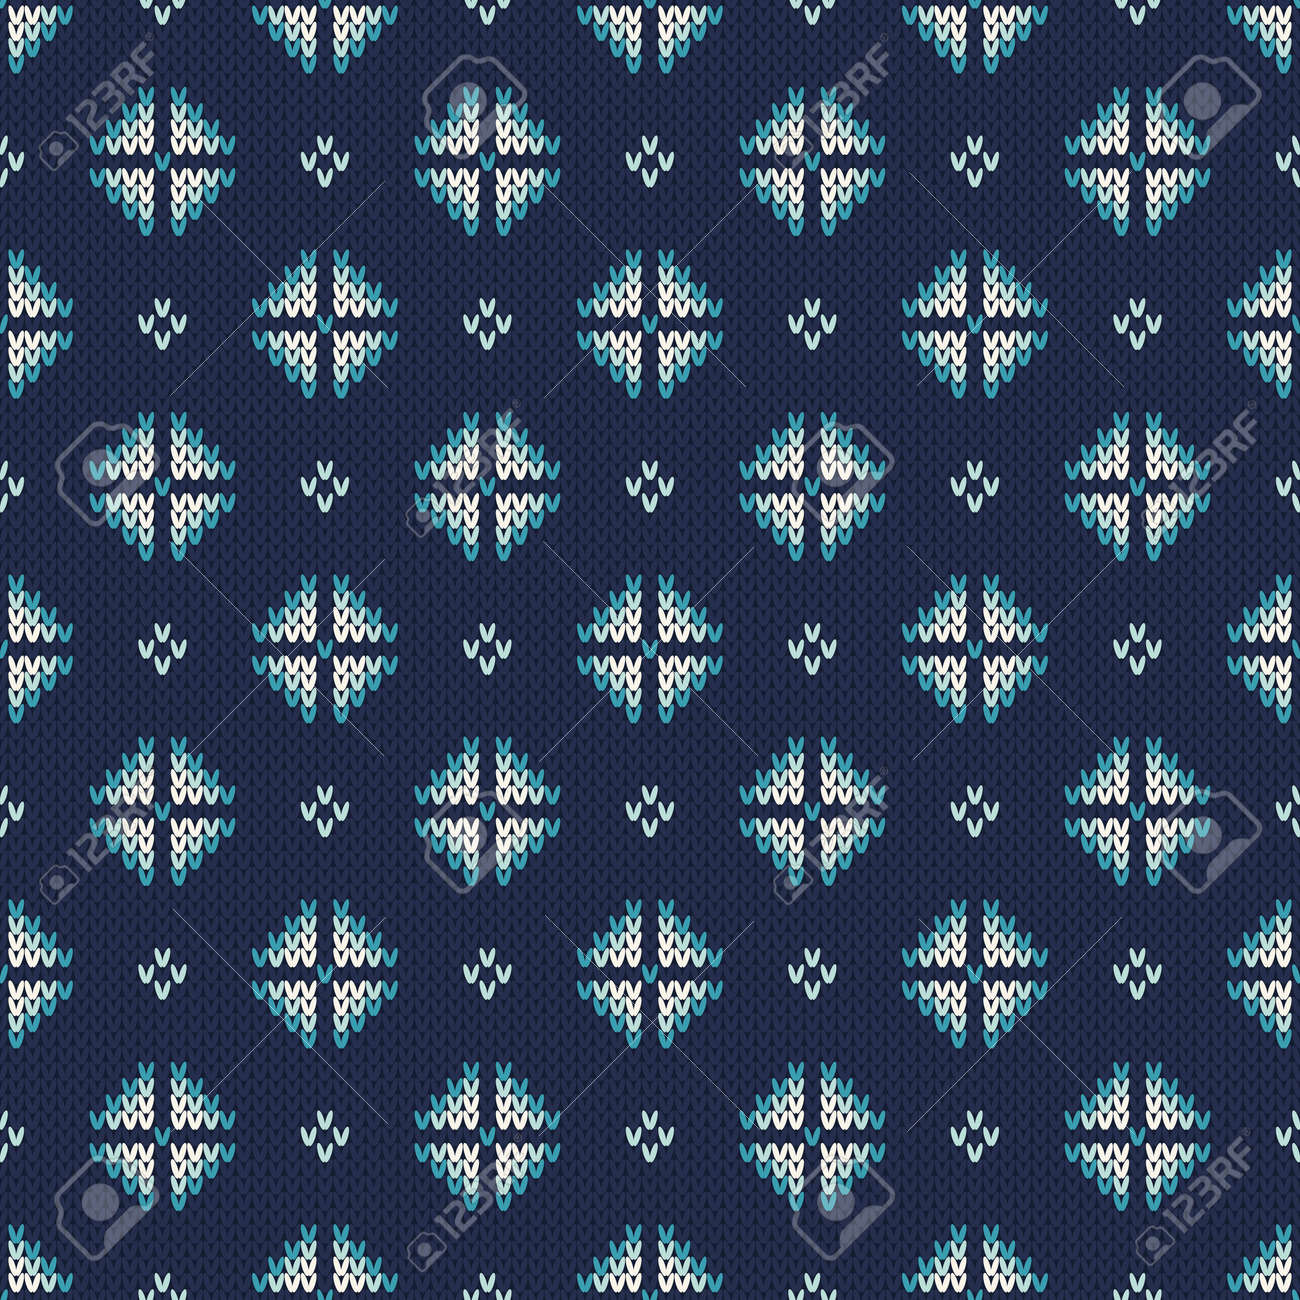 Winter Holiday Knitted Pattern With Snowflakes. Royalty Free ...